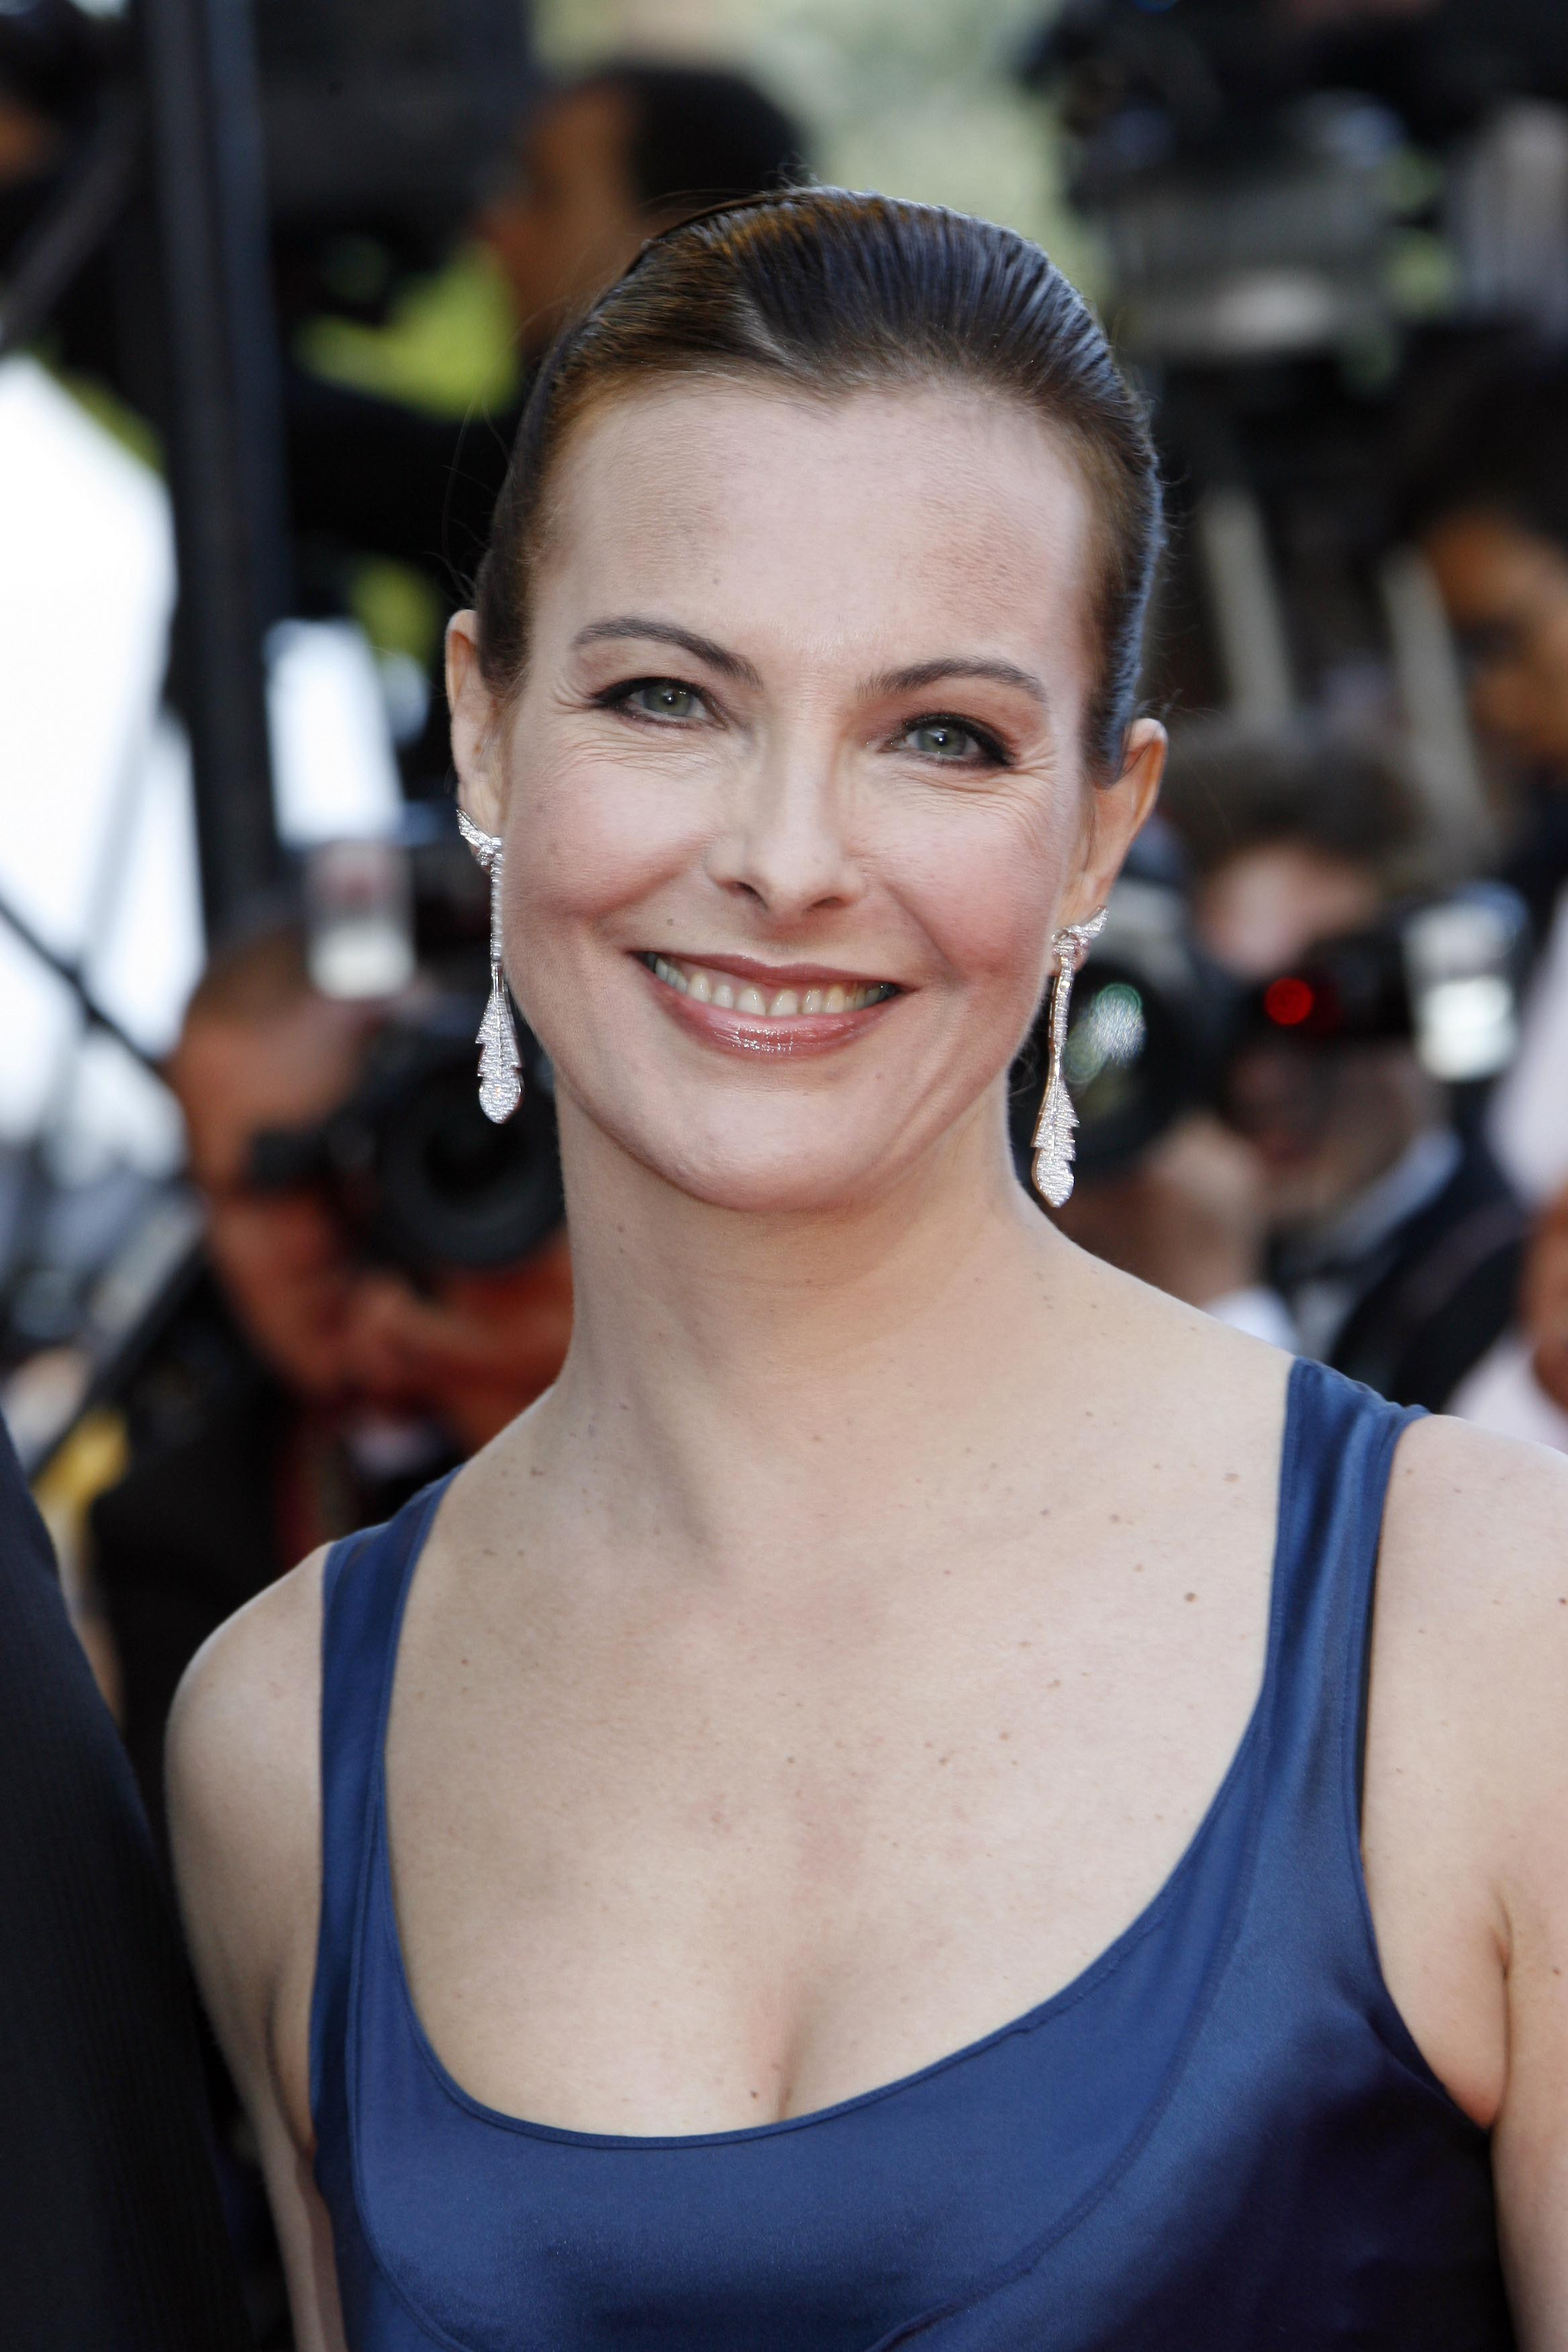 Poze Carole Bouquet - Actor - Poza 5 din 50 - CineMagia.ro Kim Cattrall Today